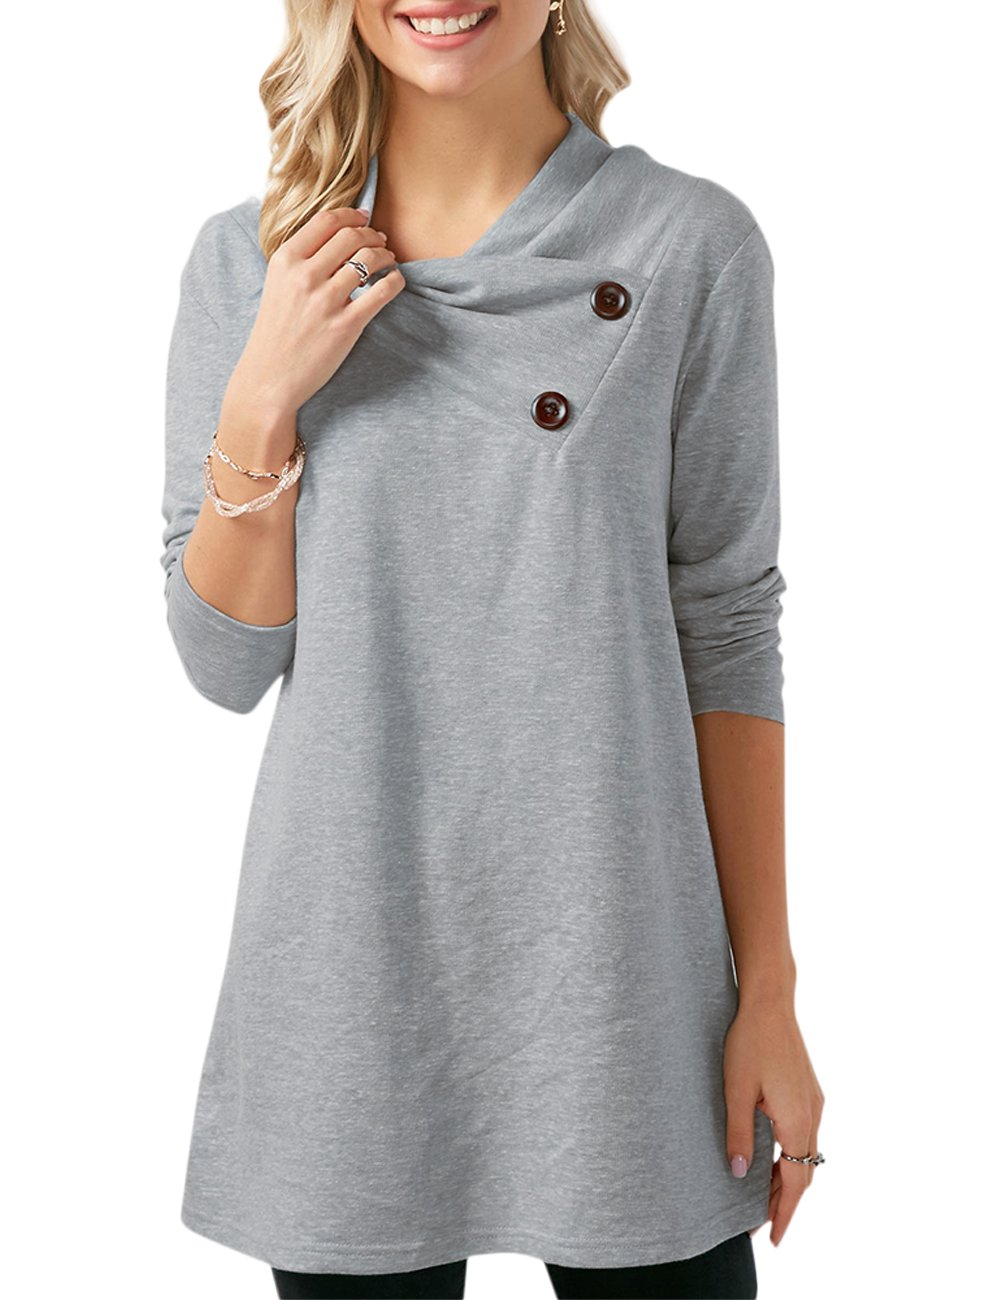 Chenghe Women's Cowl Neck Tunic Tops Long Sleeve Sweatshirts with Buttons (Grey X-Large)